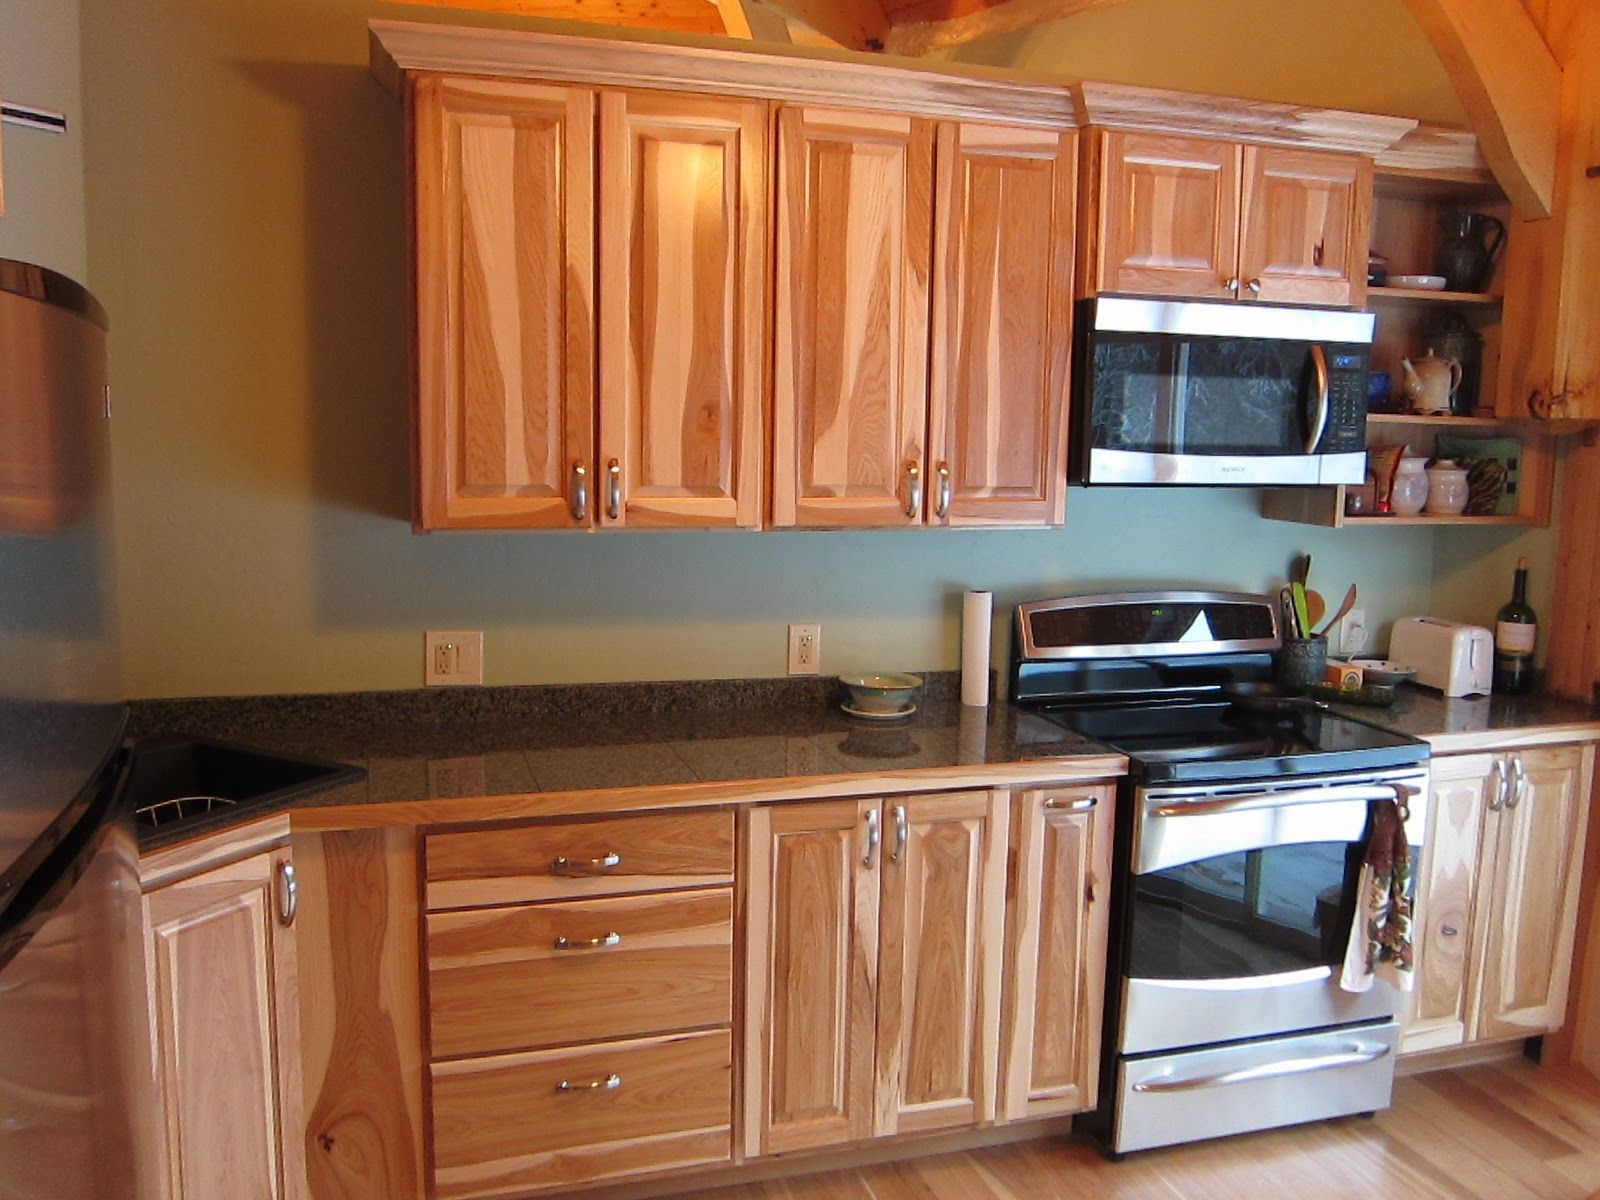 assembled+hickory+kitchen+cabinets | hickory kitchen cabinets